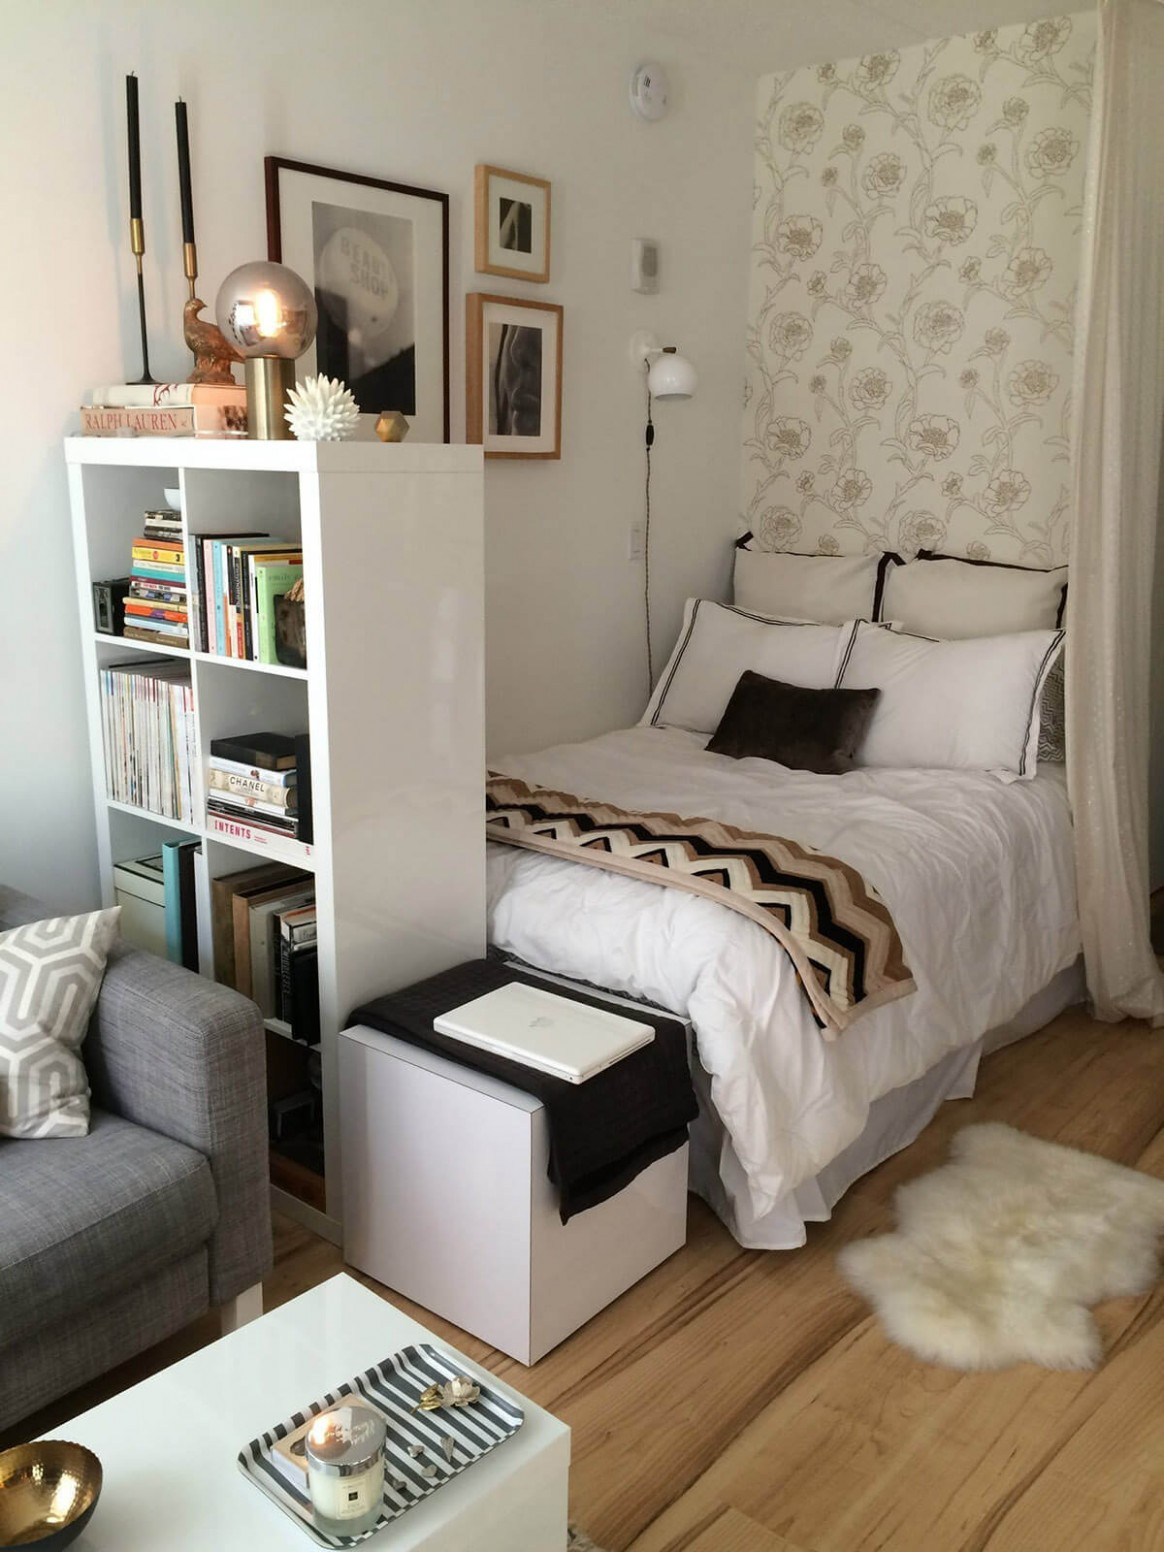 9 Best Small Bedroom Ideas and Designs for 9 - 10X10 Bedroom Ideas